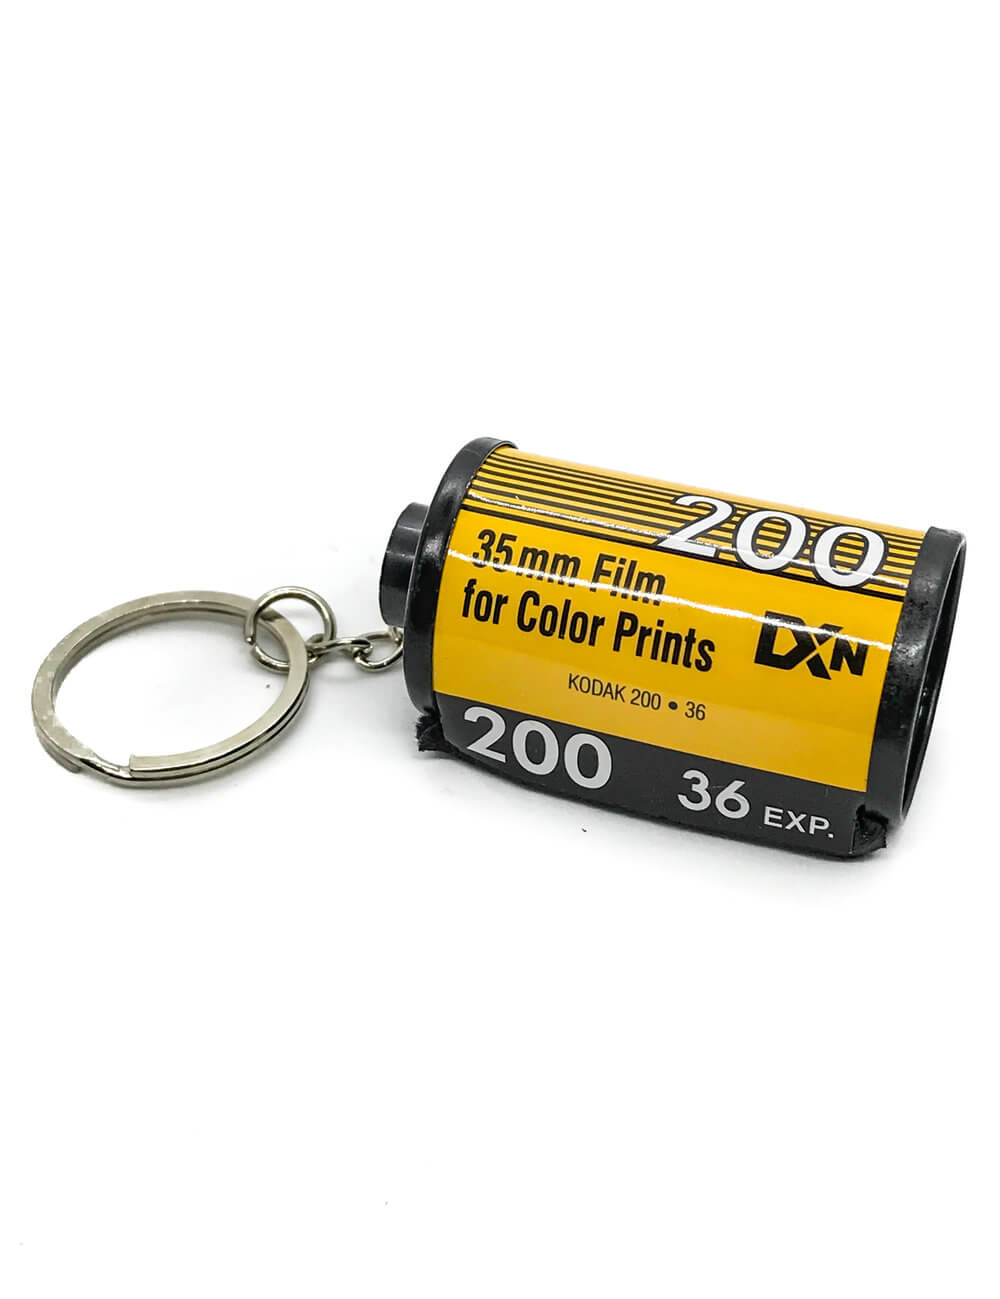 35mm yellow kodak film keychain on white background